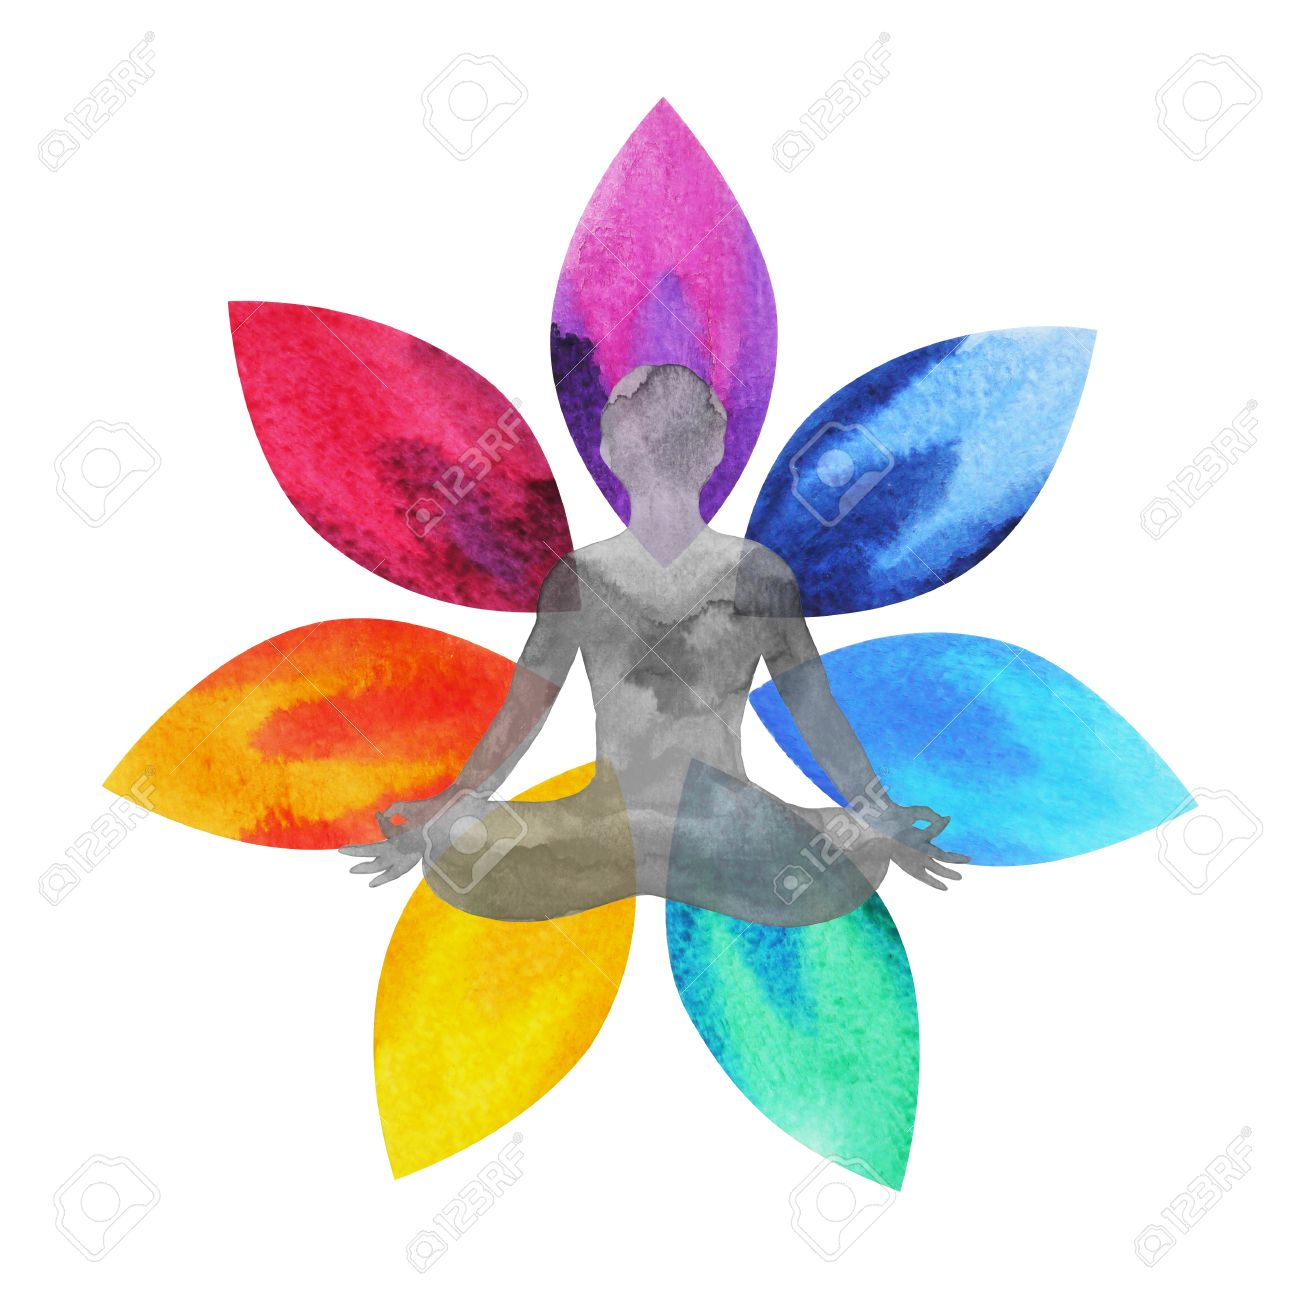 7 Color Of Chakra Symbol Lotus Flower With Human Body Watercolor